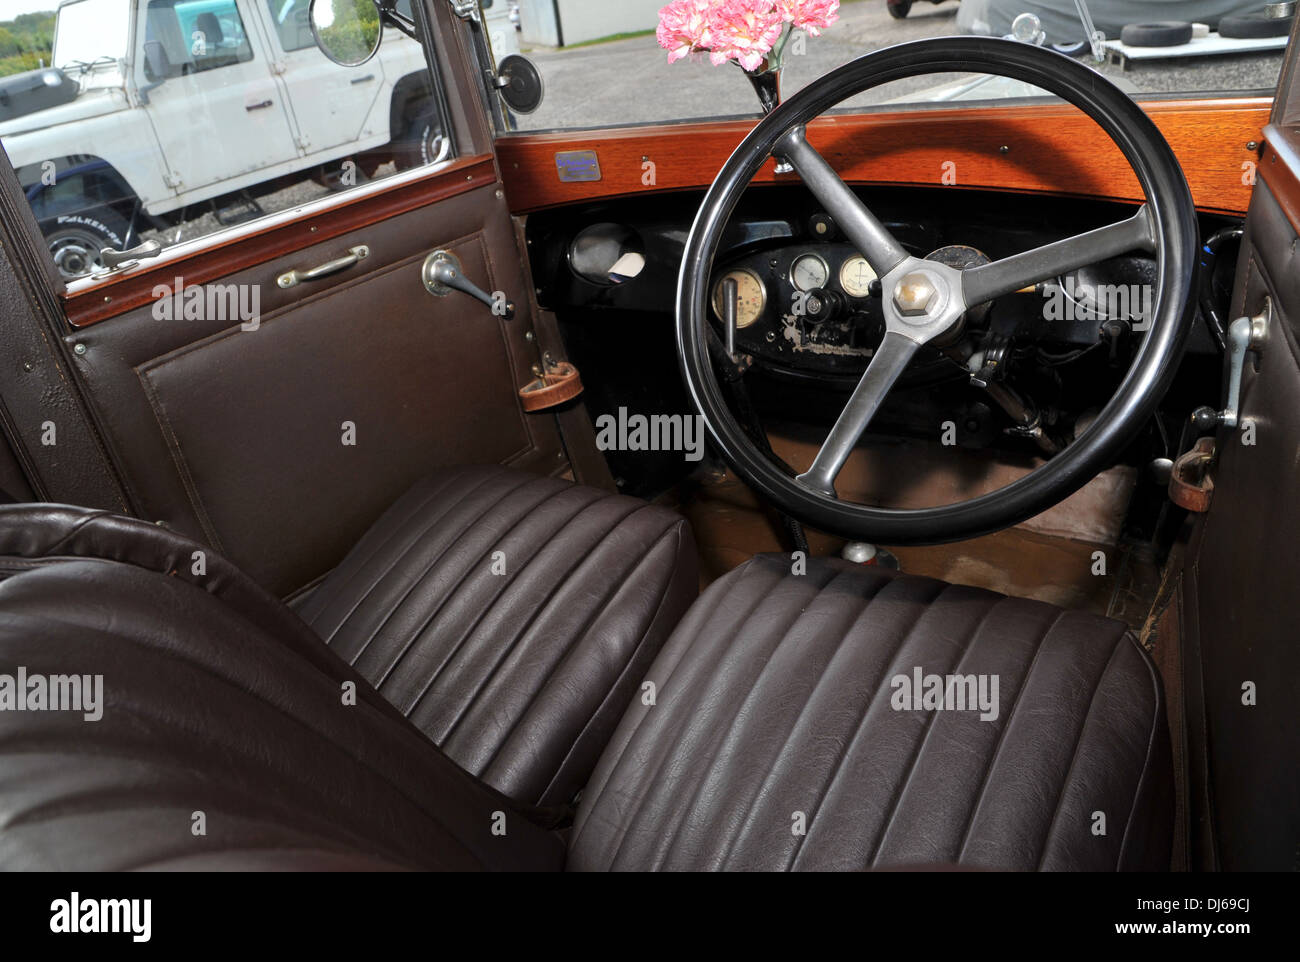 morris cowley vintage british classic car of the 1920s and 30s stock photo royalty free image. Black Bedroom Furniture Sets. Home Design Ideas